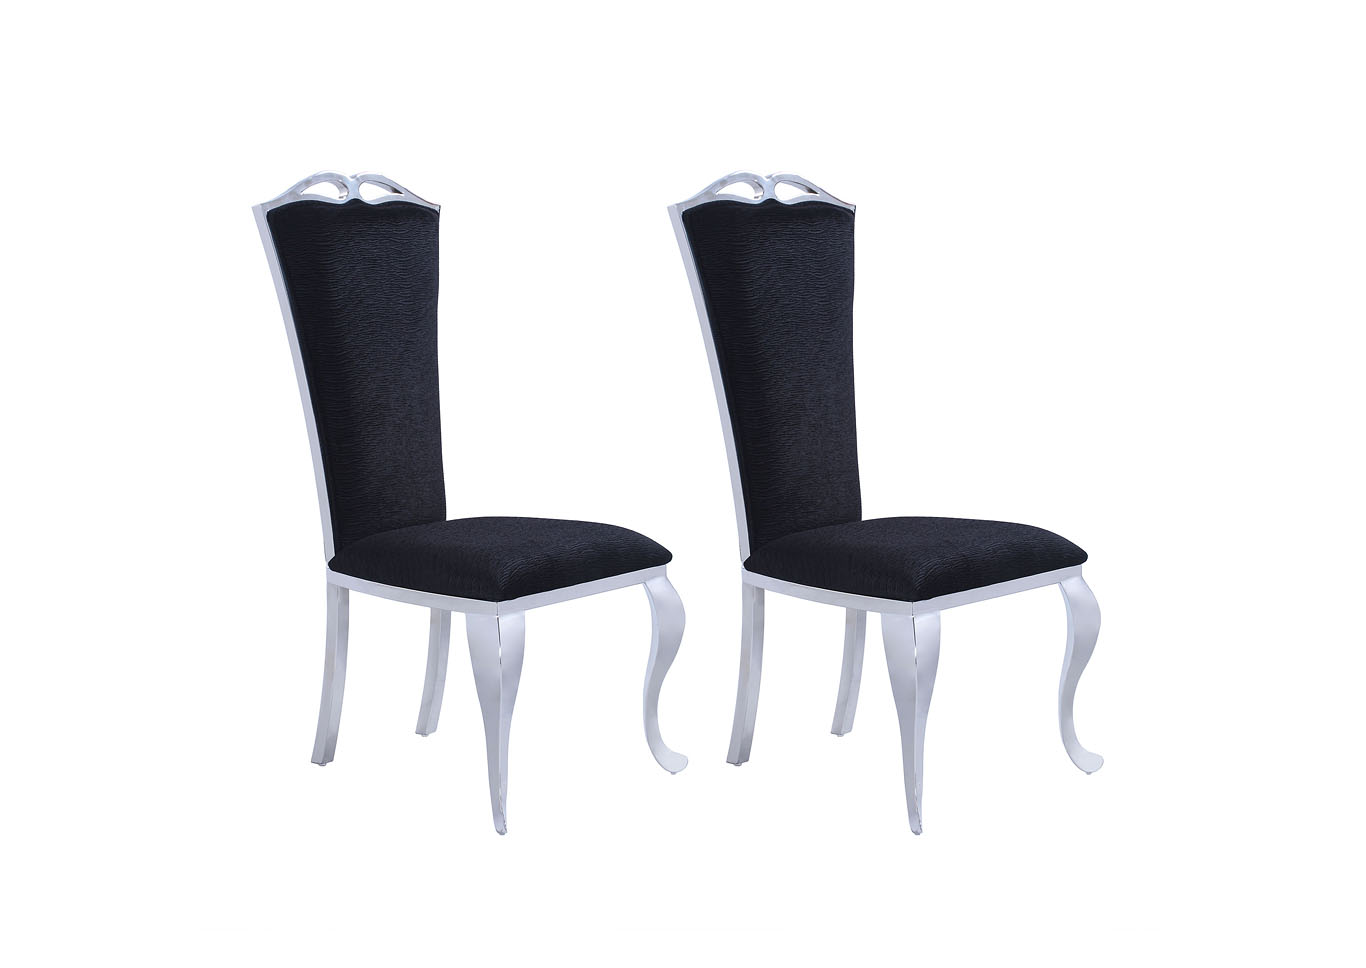 Raegan Black Tall-Back Side Chair (Set of 2),Chintaly Imports